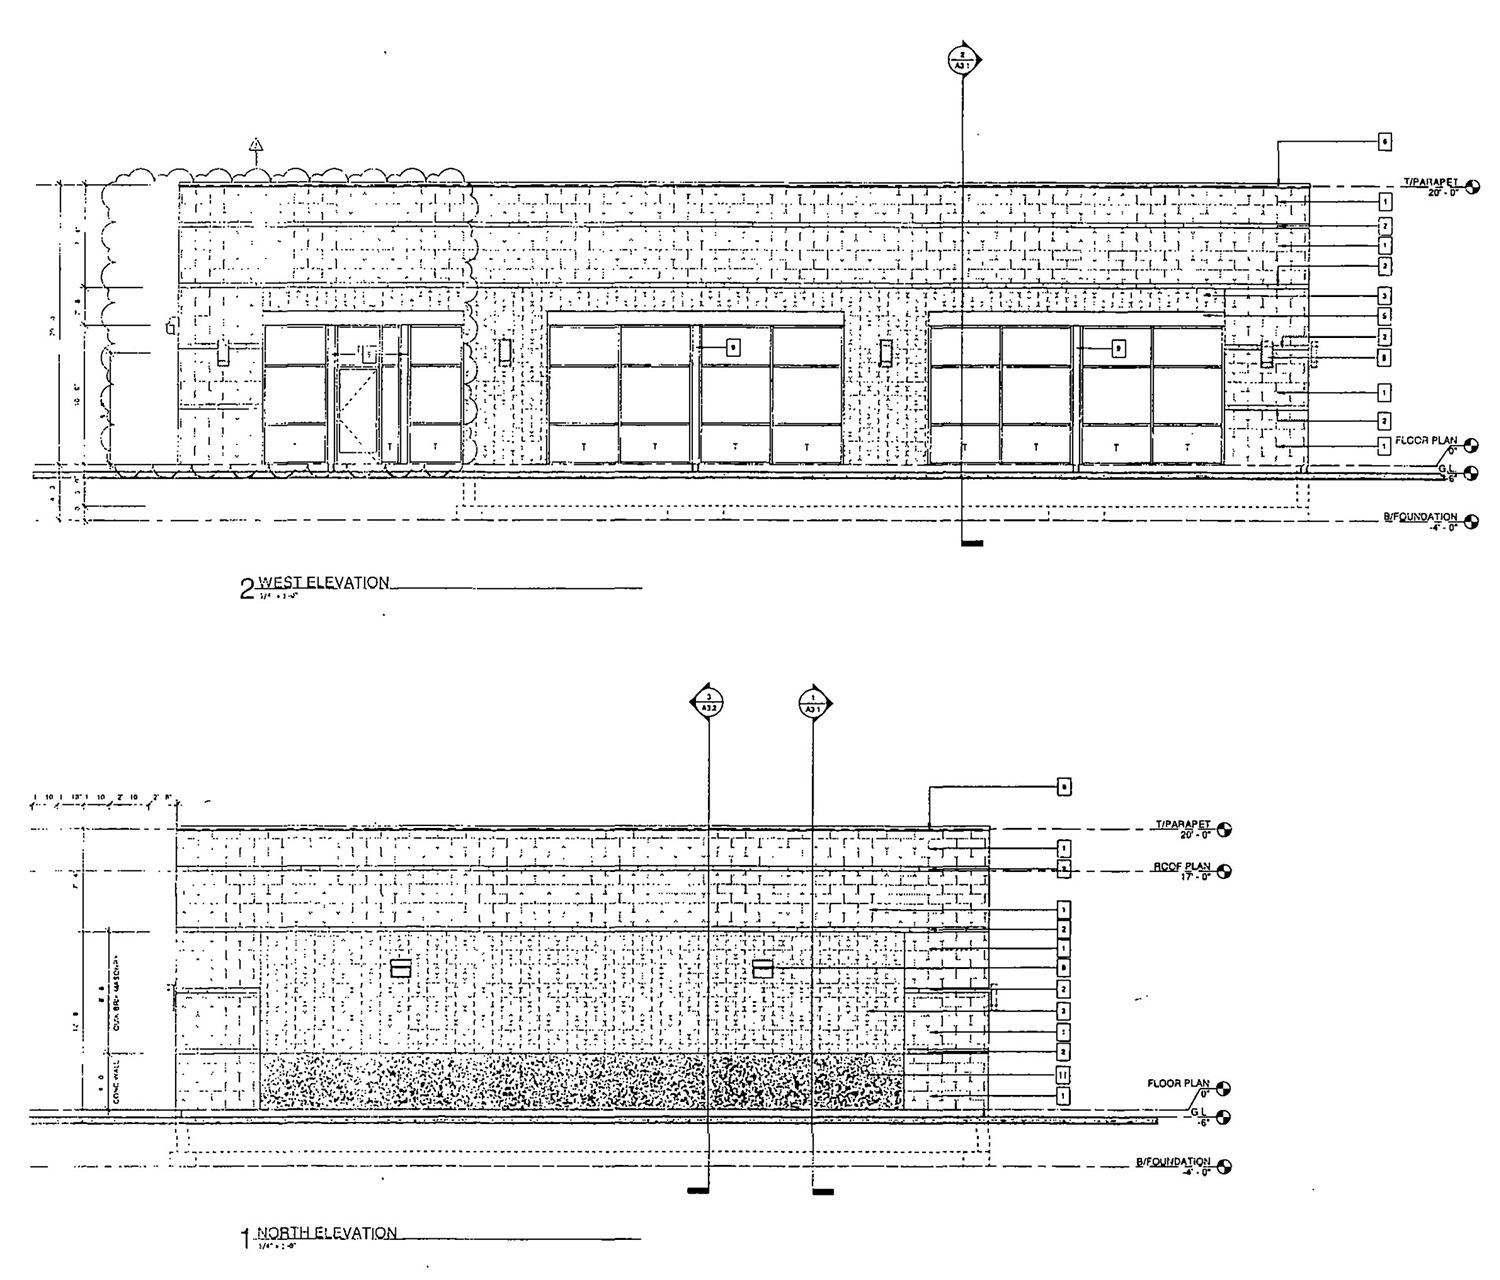 Retail Building Elevations at 1601 N Western Avenue. Drawing by Design Studio 24